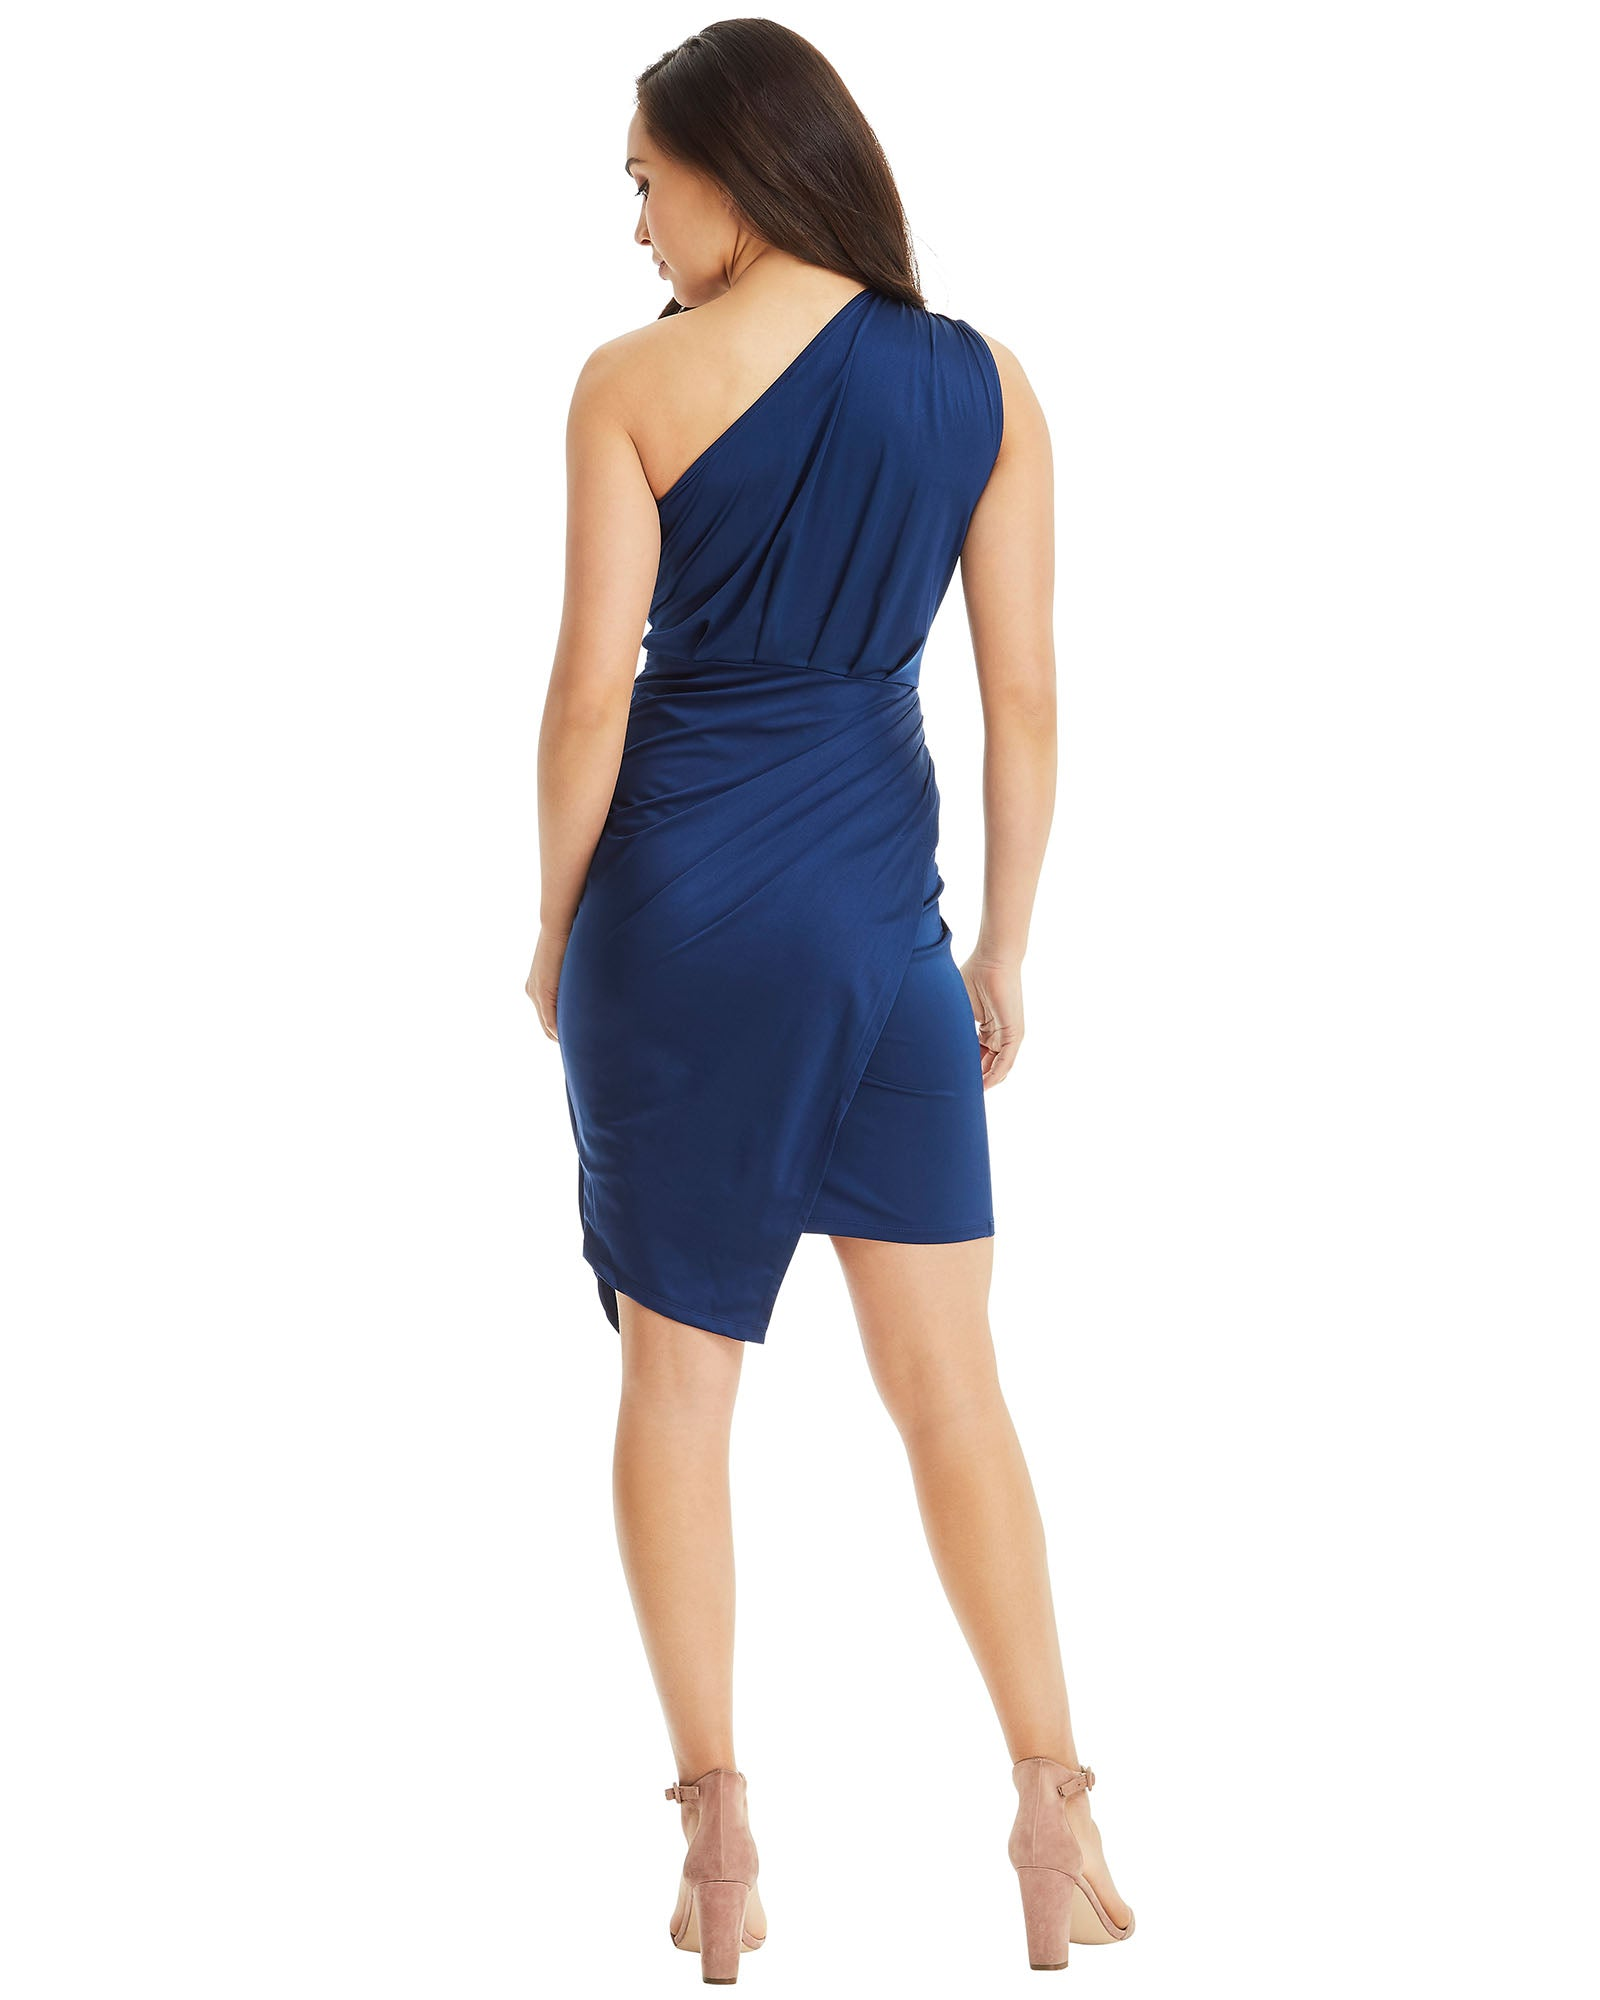 SKIVA one shoulder dress asymmetrical blue stretch fabric slip on pull on knee length midi work party cocktail